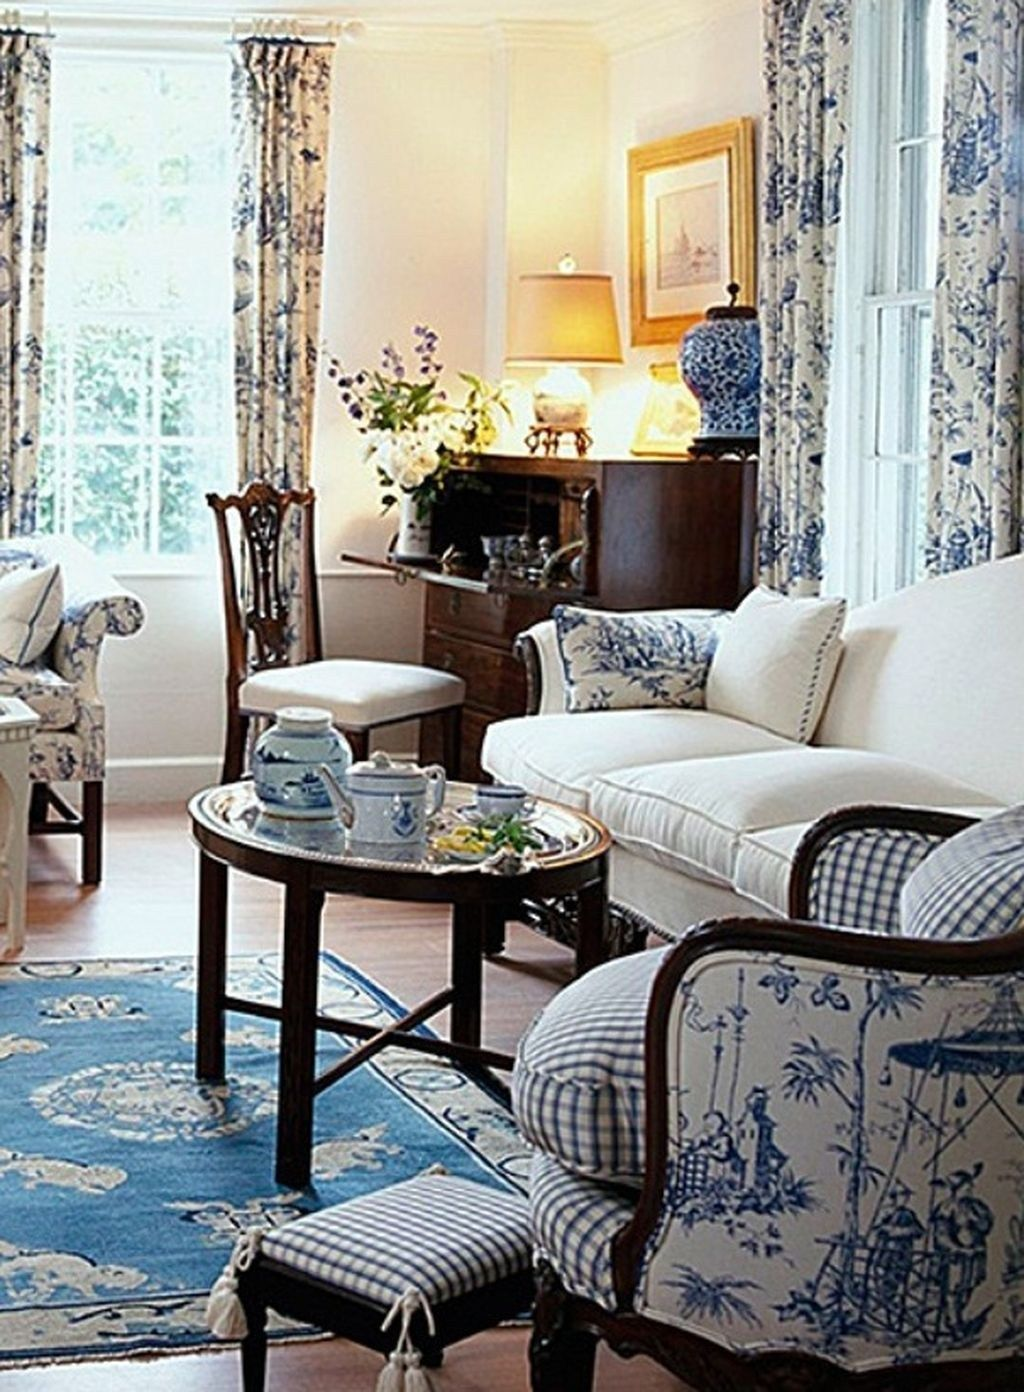 51 Cute French Style Living Room For New Home Style Roundecor French Country Decorating Living Room Country Cottage Living Room Country House Decor #themed #living #room #decor